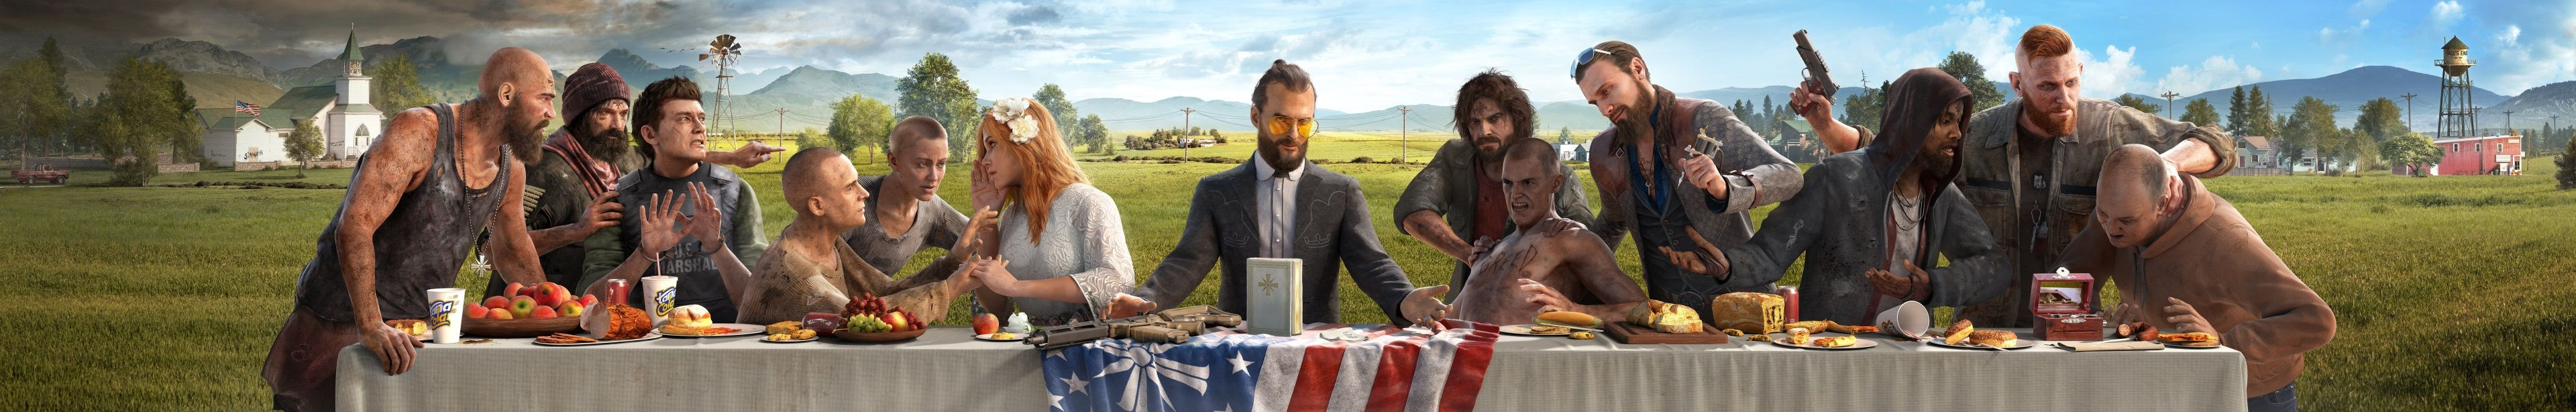 3840x614 Joseph Seed 4k Download Wallpaper Free Far Cry 5 Samsung Wallpaper 8k Wallpaper